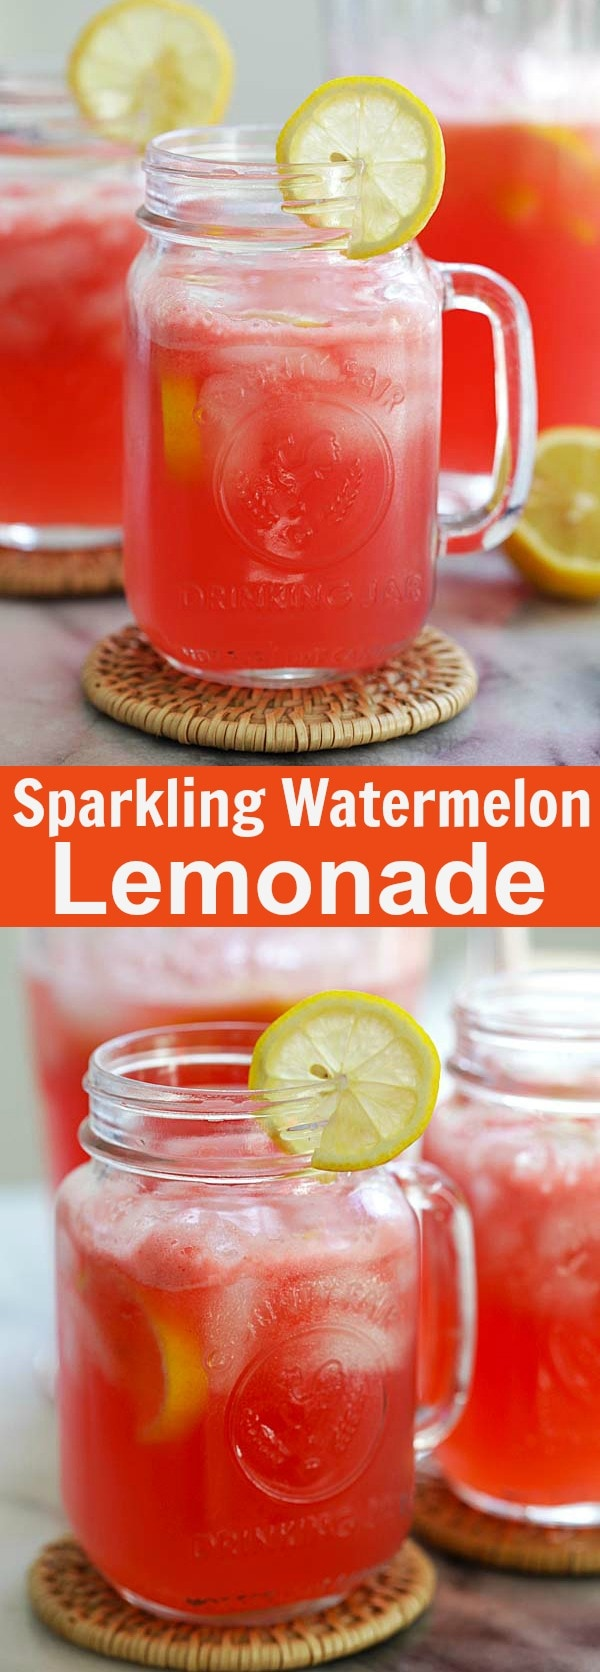 Sparkling Watermelon Lemonade - this bubbly watermelon lemonade recipe is all you need this summer. So refreshing and so easy to make | rasamalaysia.com